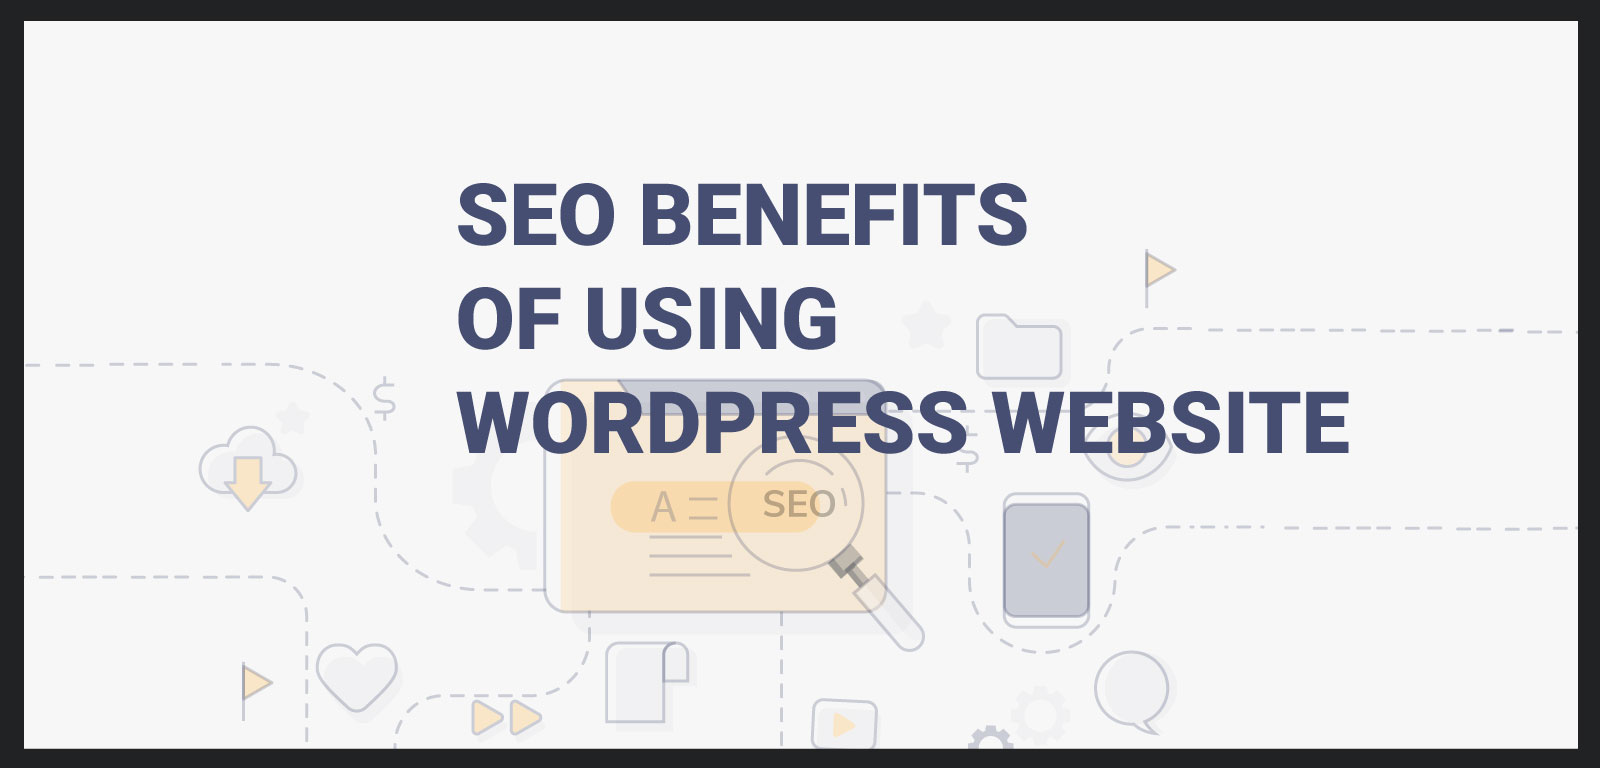 SEO benefits of using WordPress website